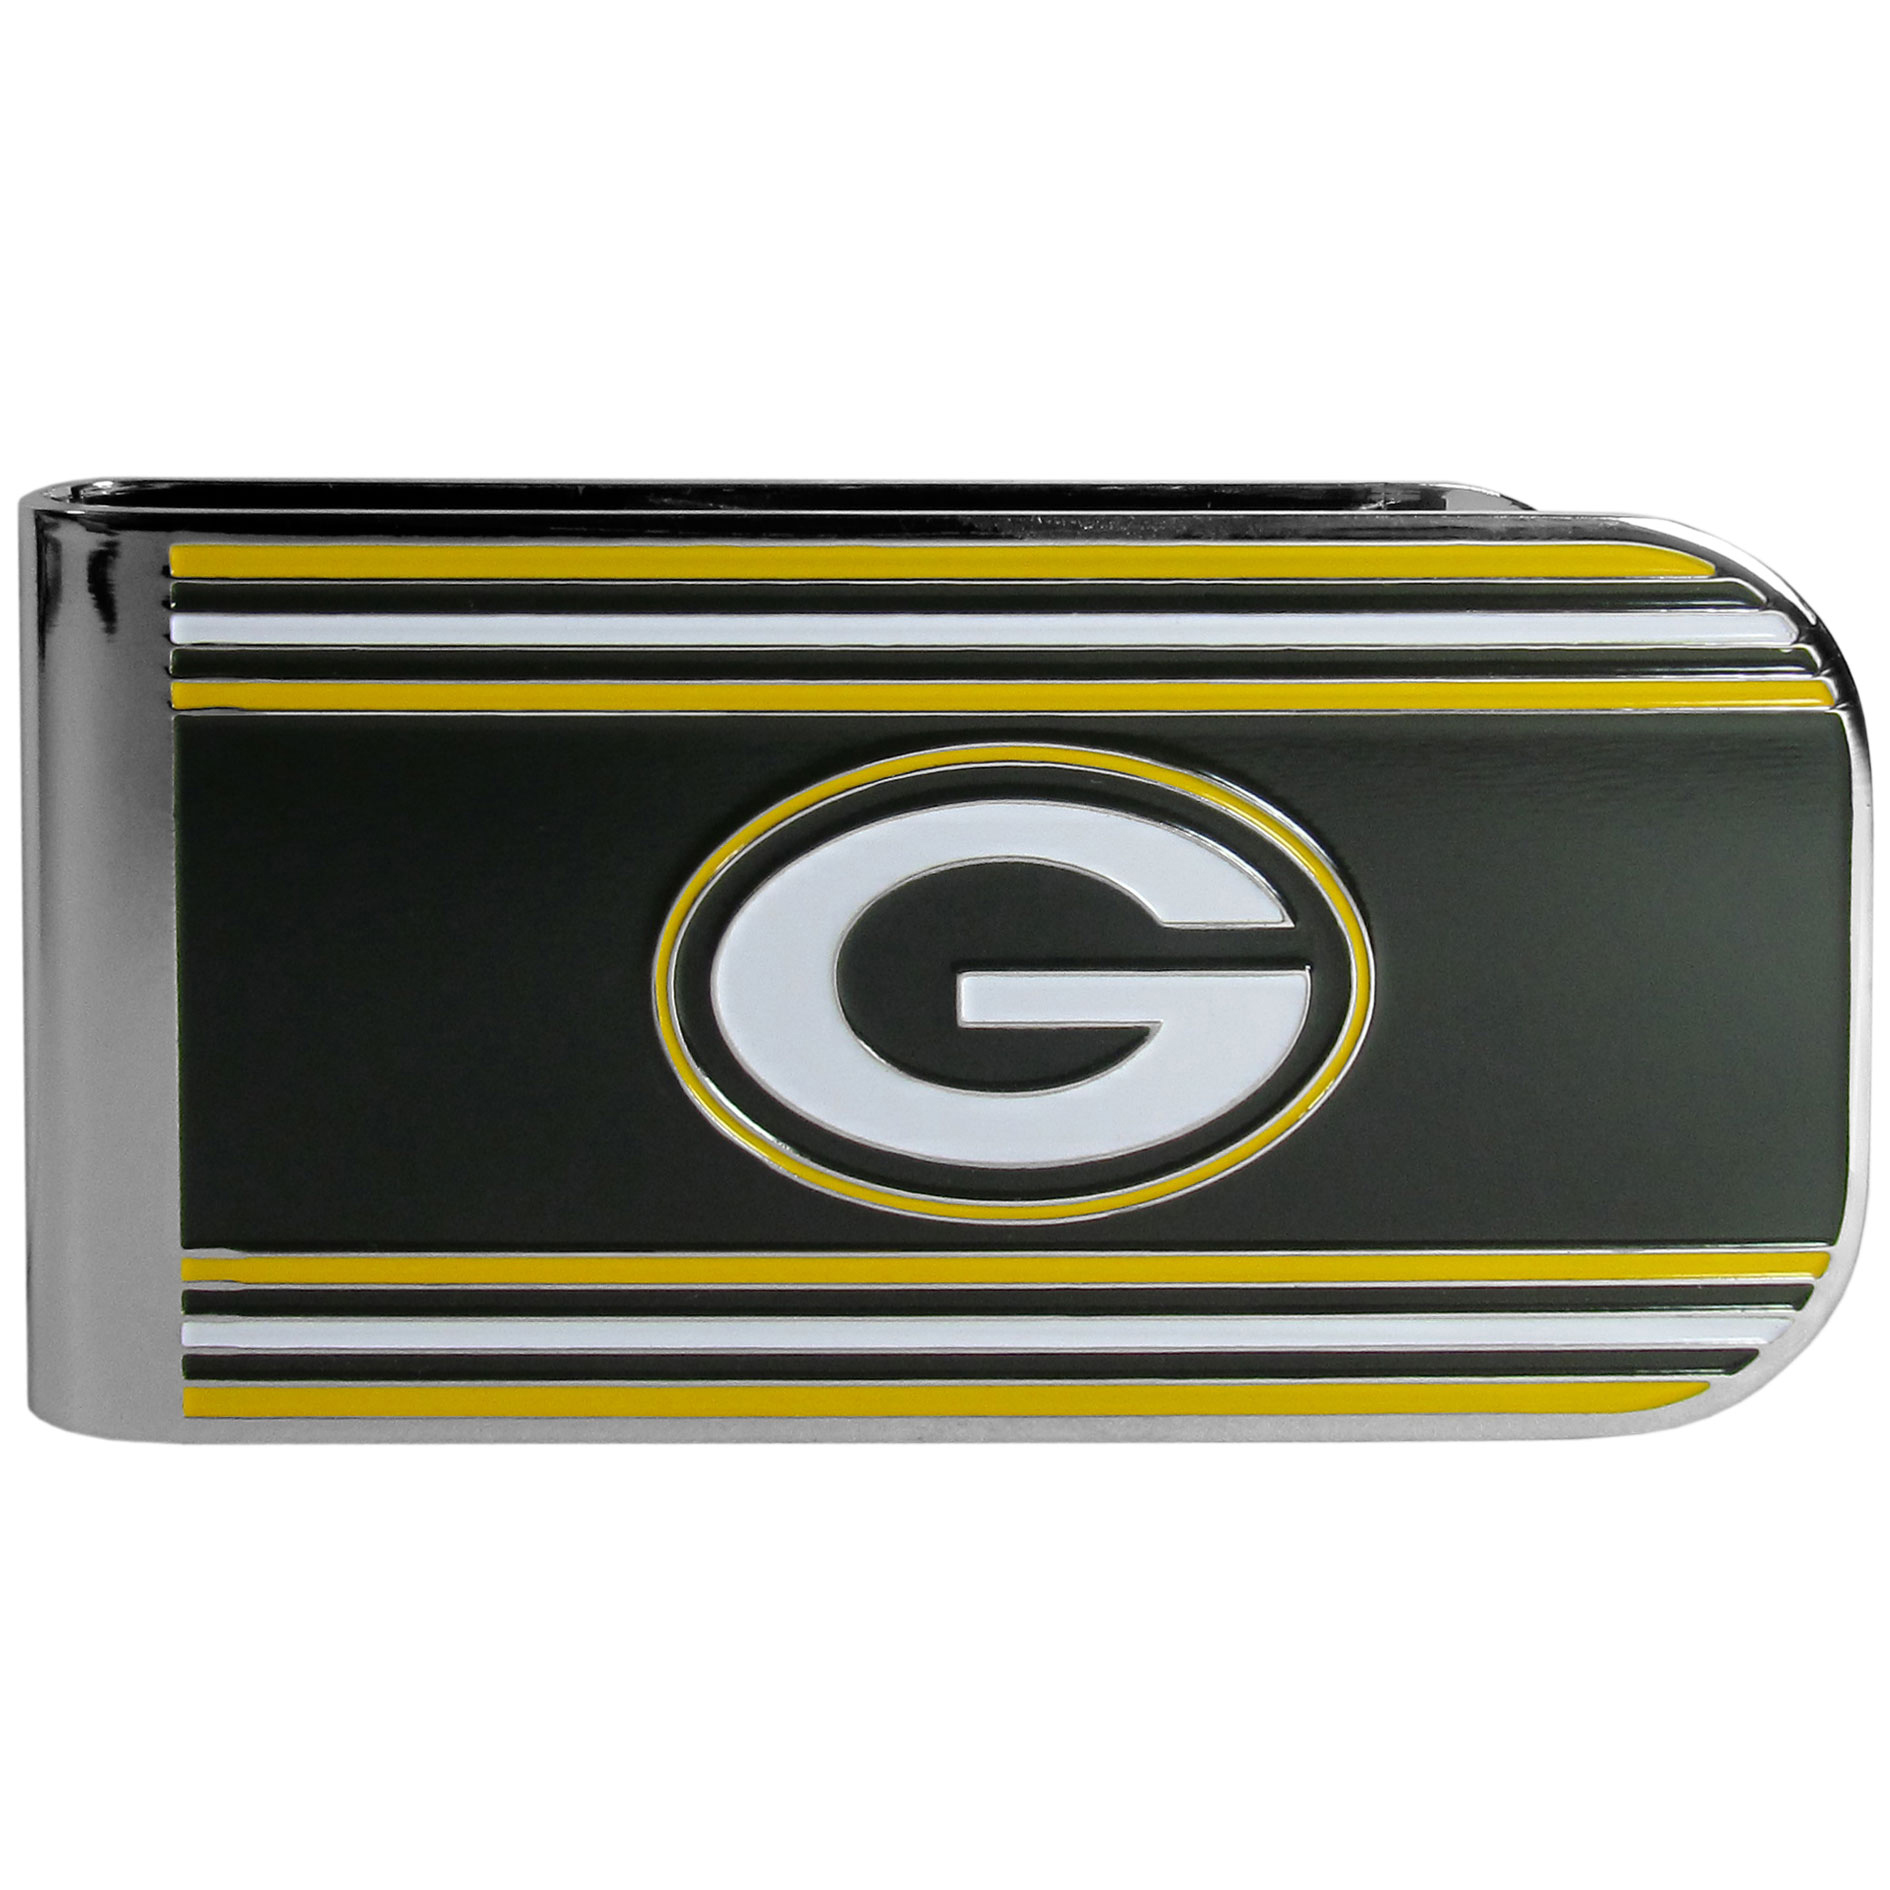 Green Bay Packers MVP Money Clip - Our MVP money clip is made of high quality steel with a chrome overlay and enameled team colors and logo. The exceptional craftmanship on this piece makes it a men's fashion accessory that any fan would be proud to own. The cast detail in the Green Bay Packers logo is perfectly detailed. The clip features an inner spring to hold your cash and cards securely in place.